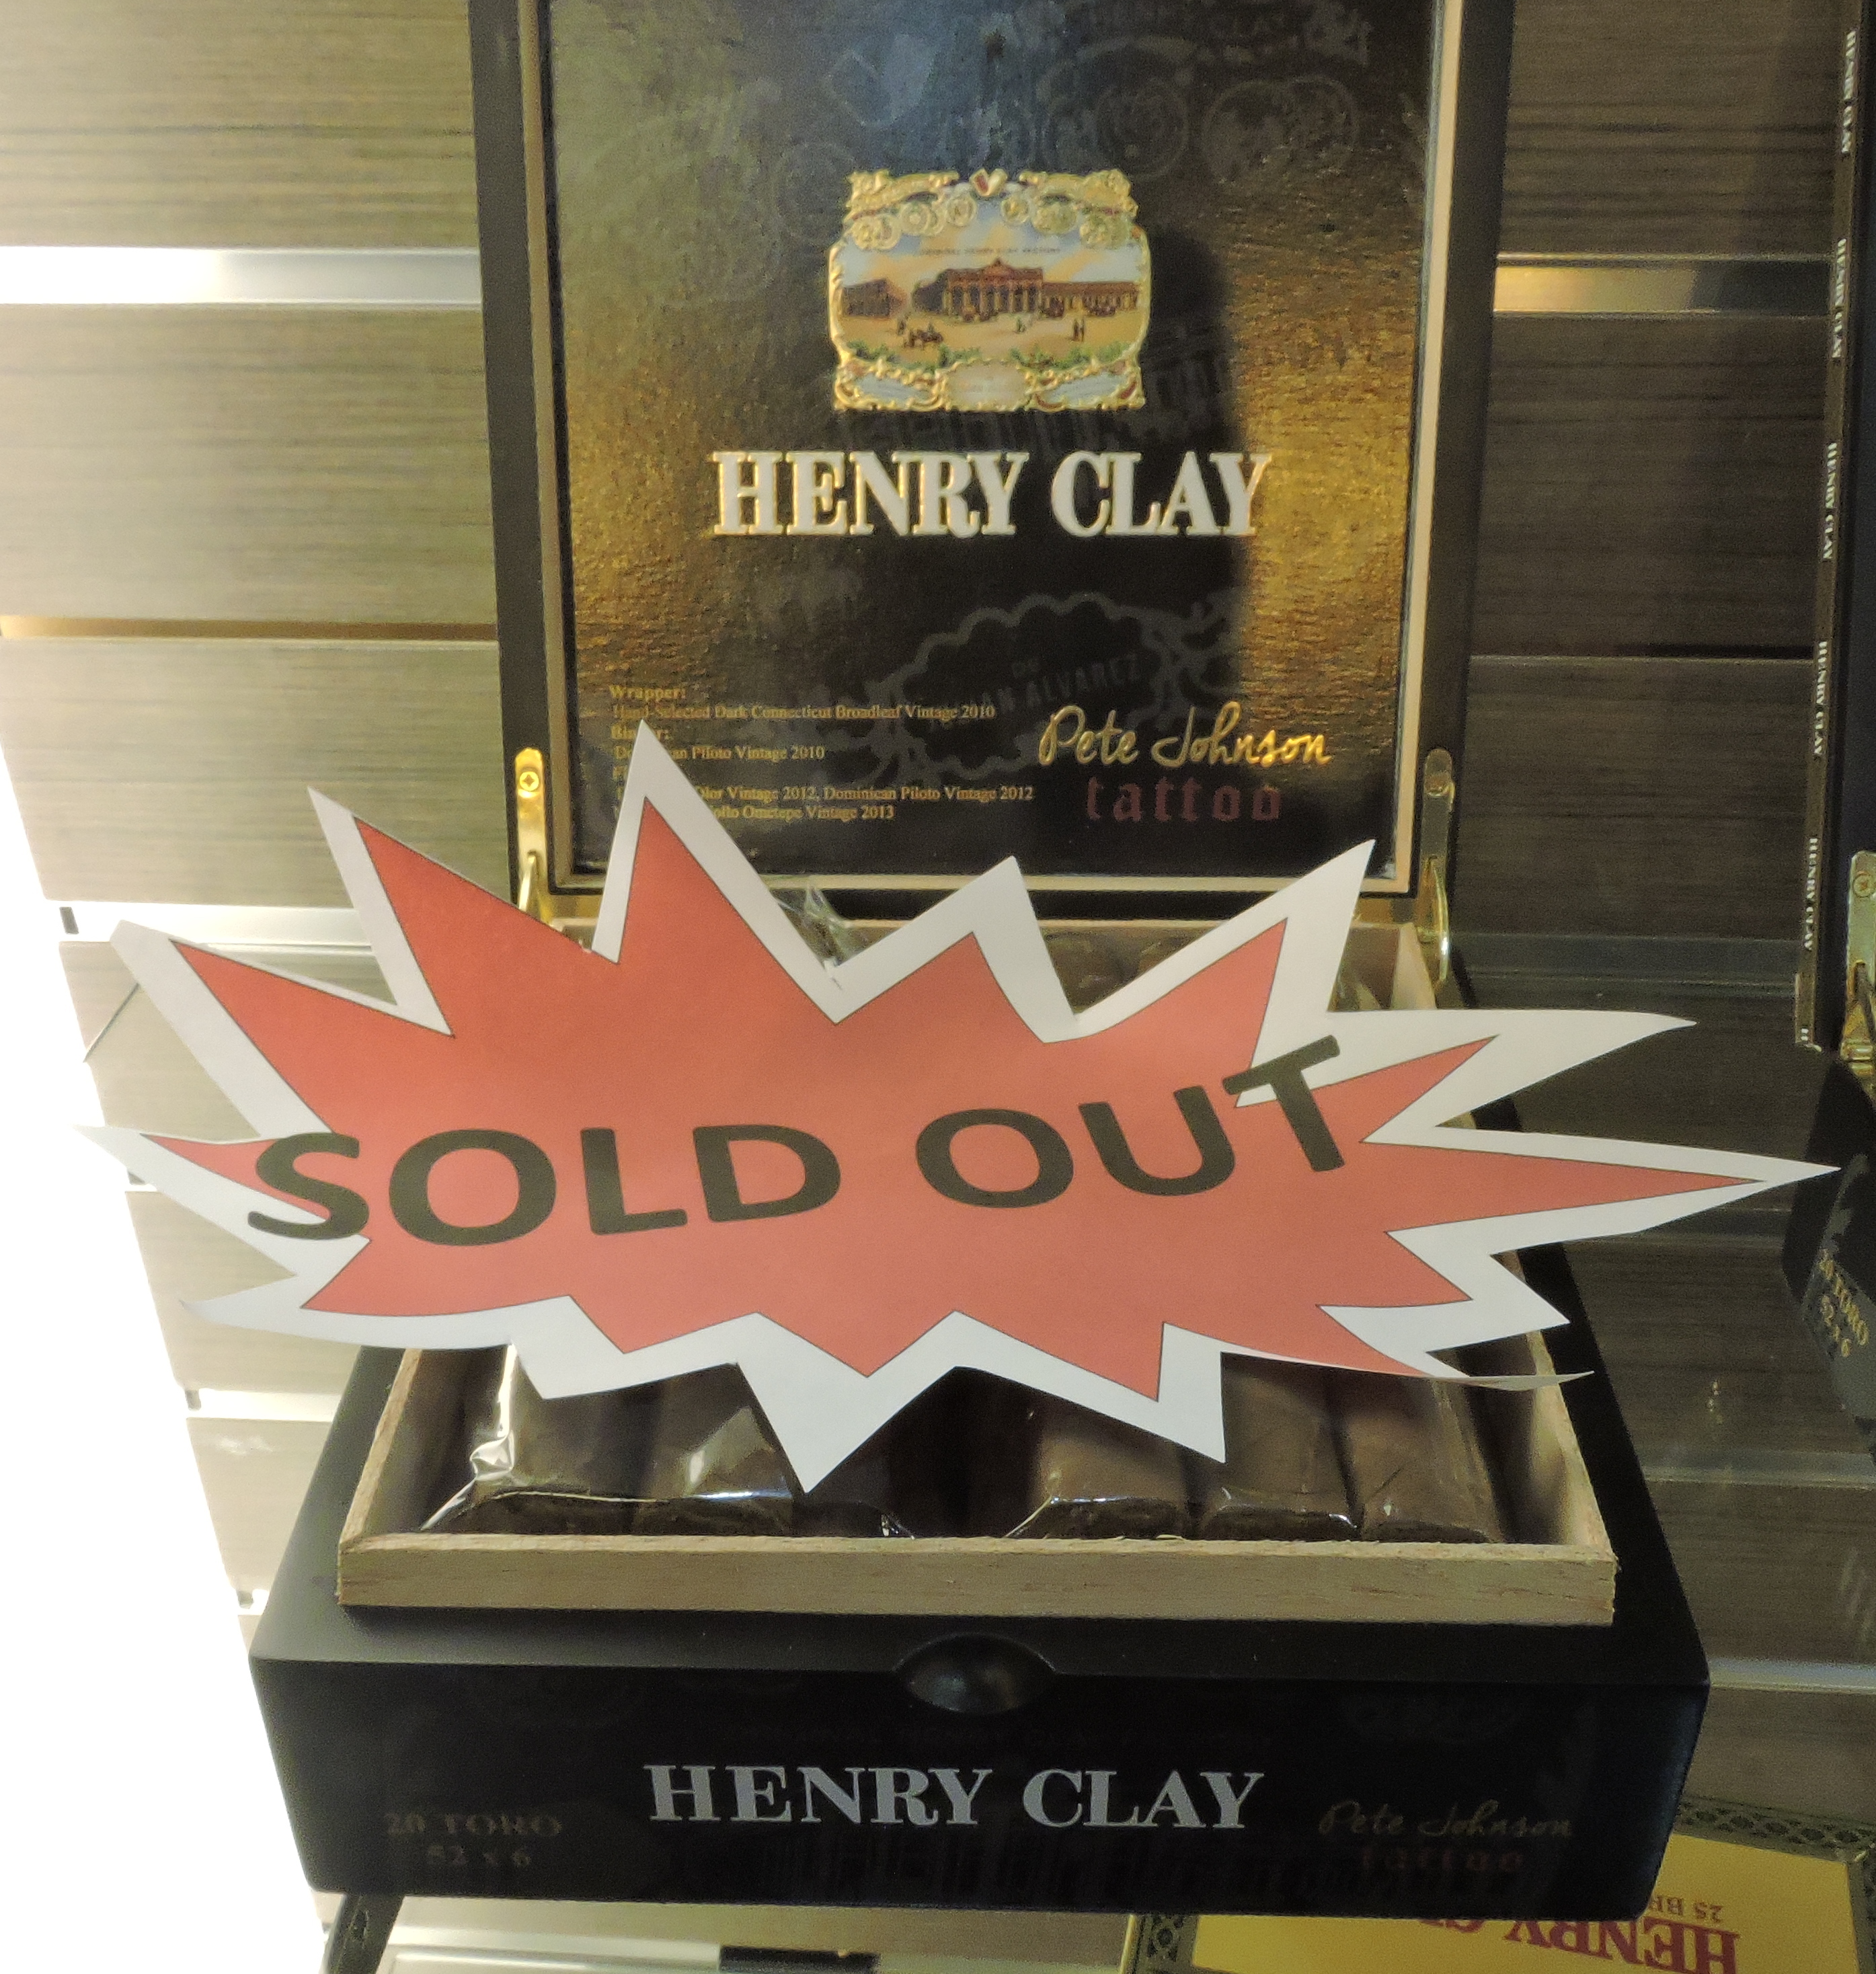 Altadis_Henry_Clay_Tattoo_Sold_Out